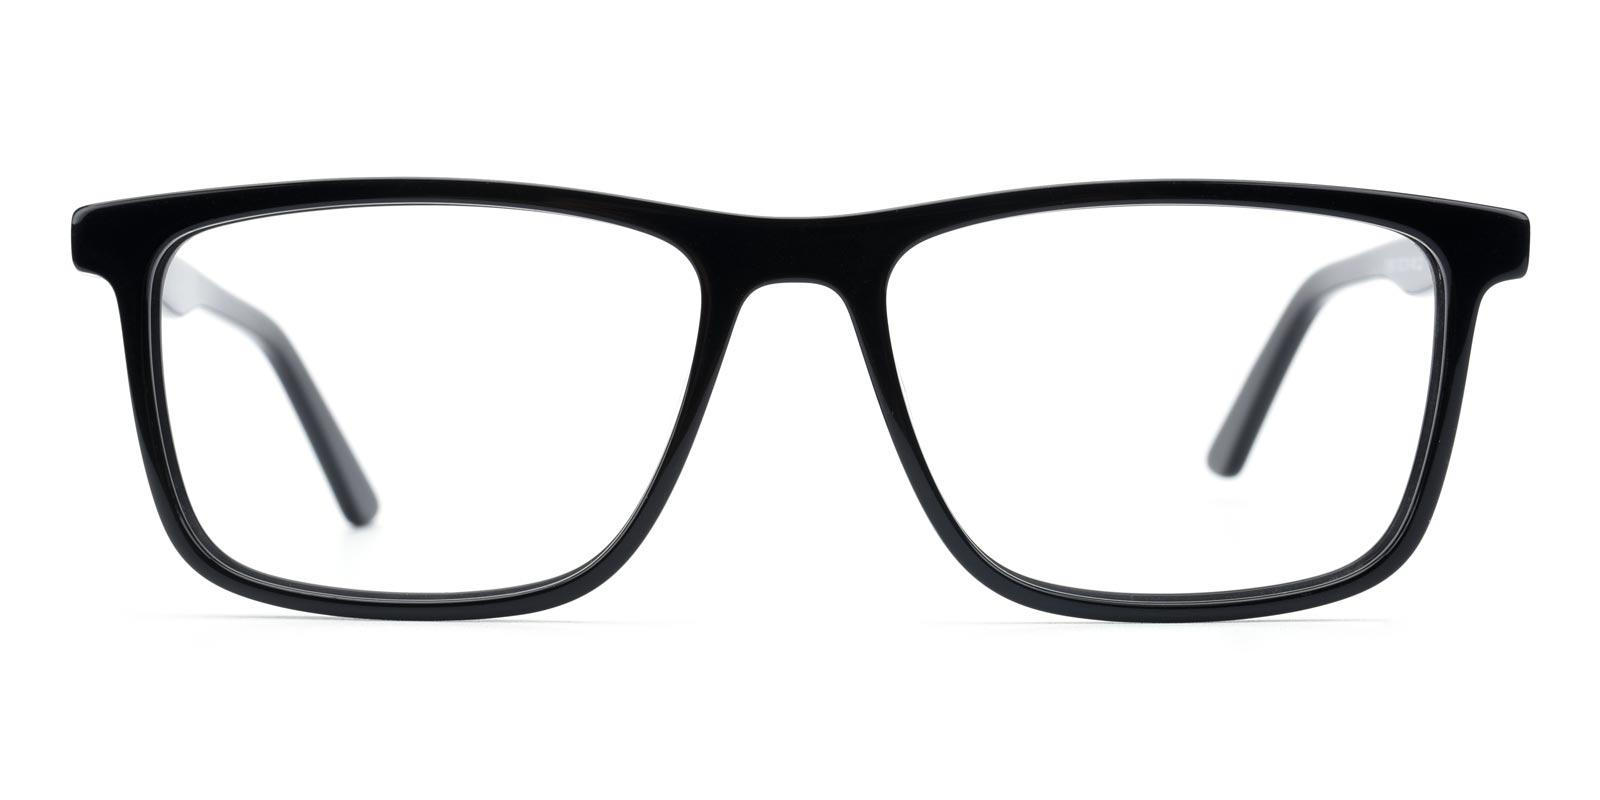 Tripper-Black-Square-Acetate-Eyeglasses-additional2